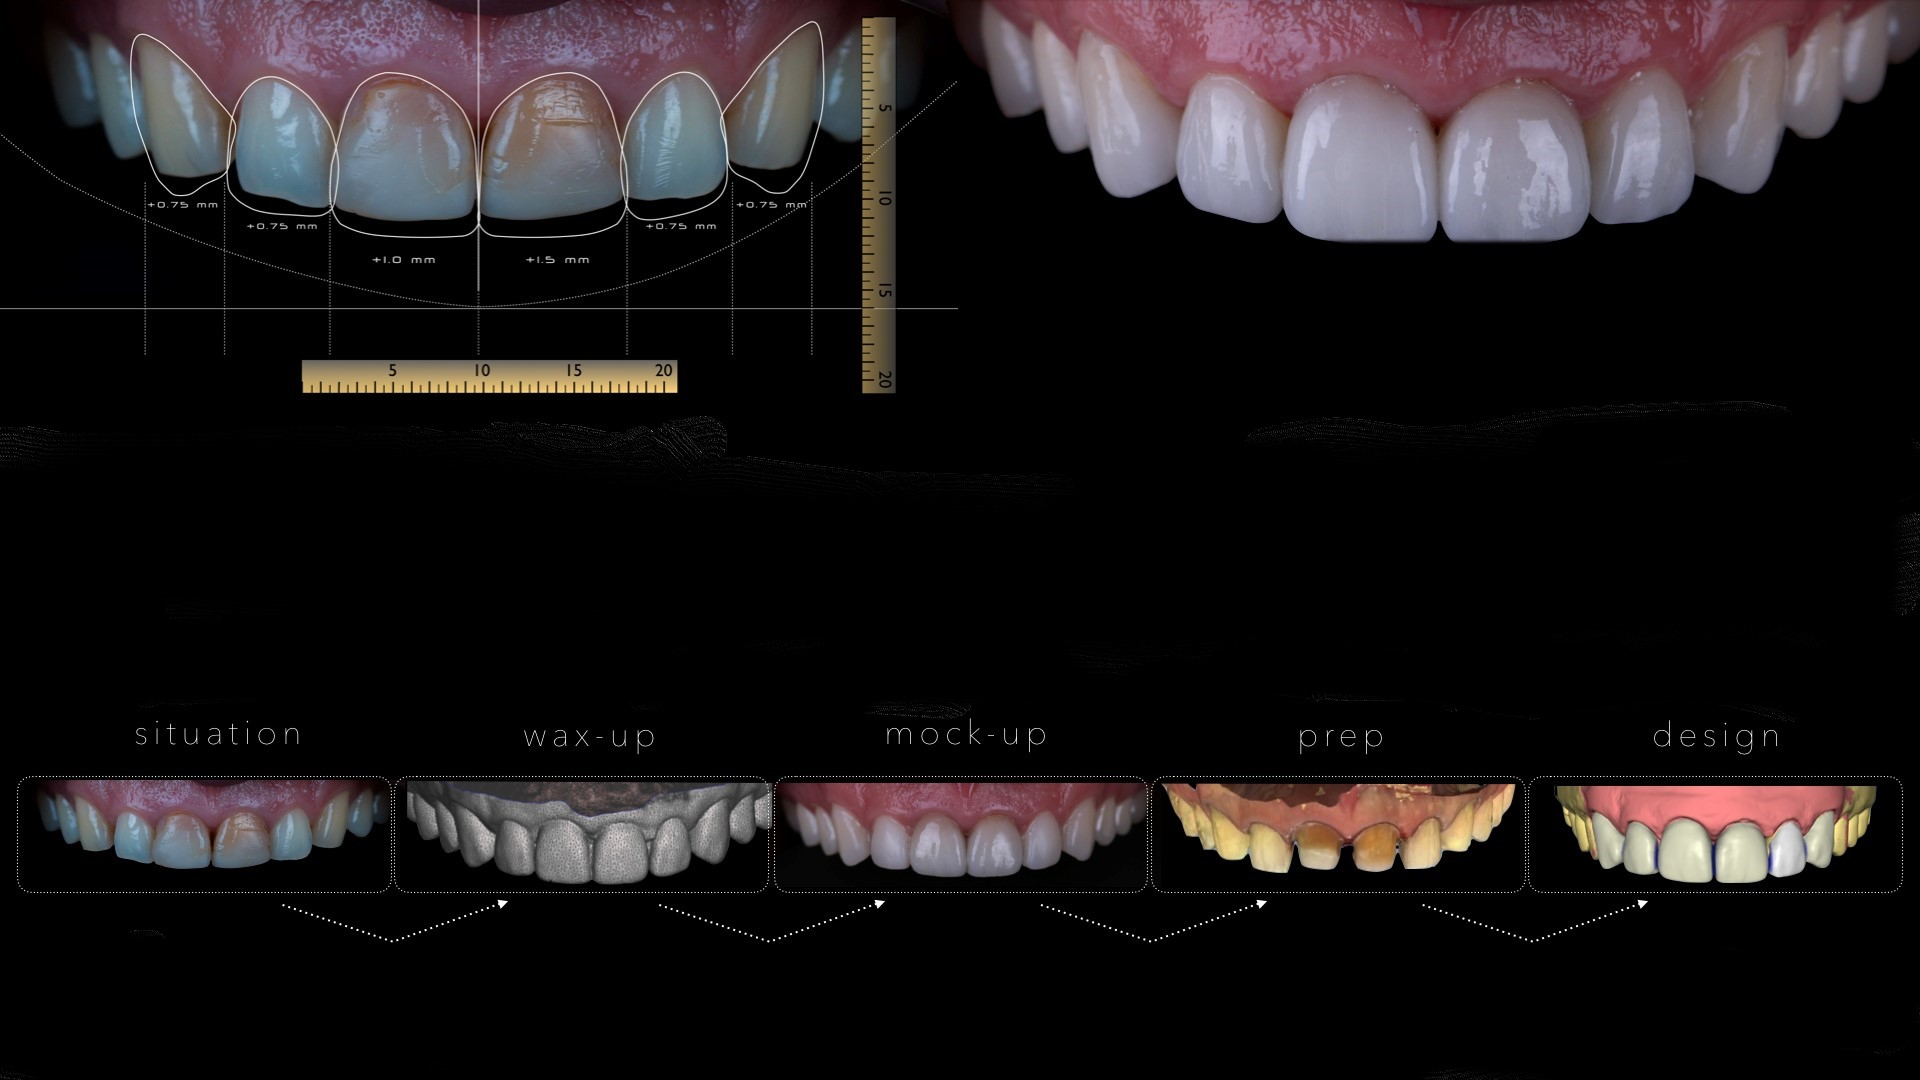 Cosmetic dental Porcelain Veneers